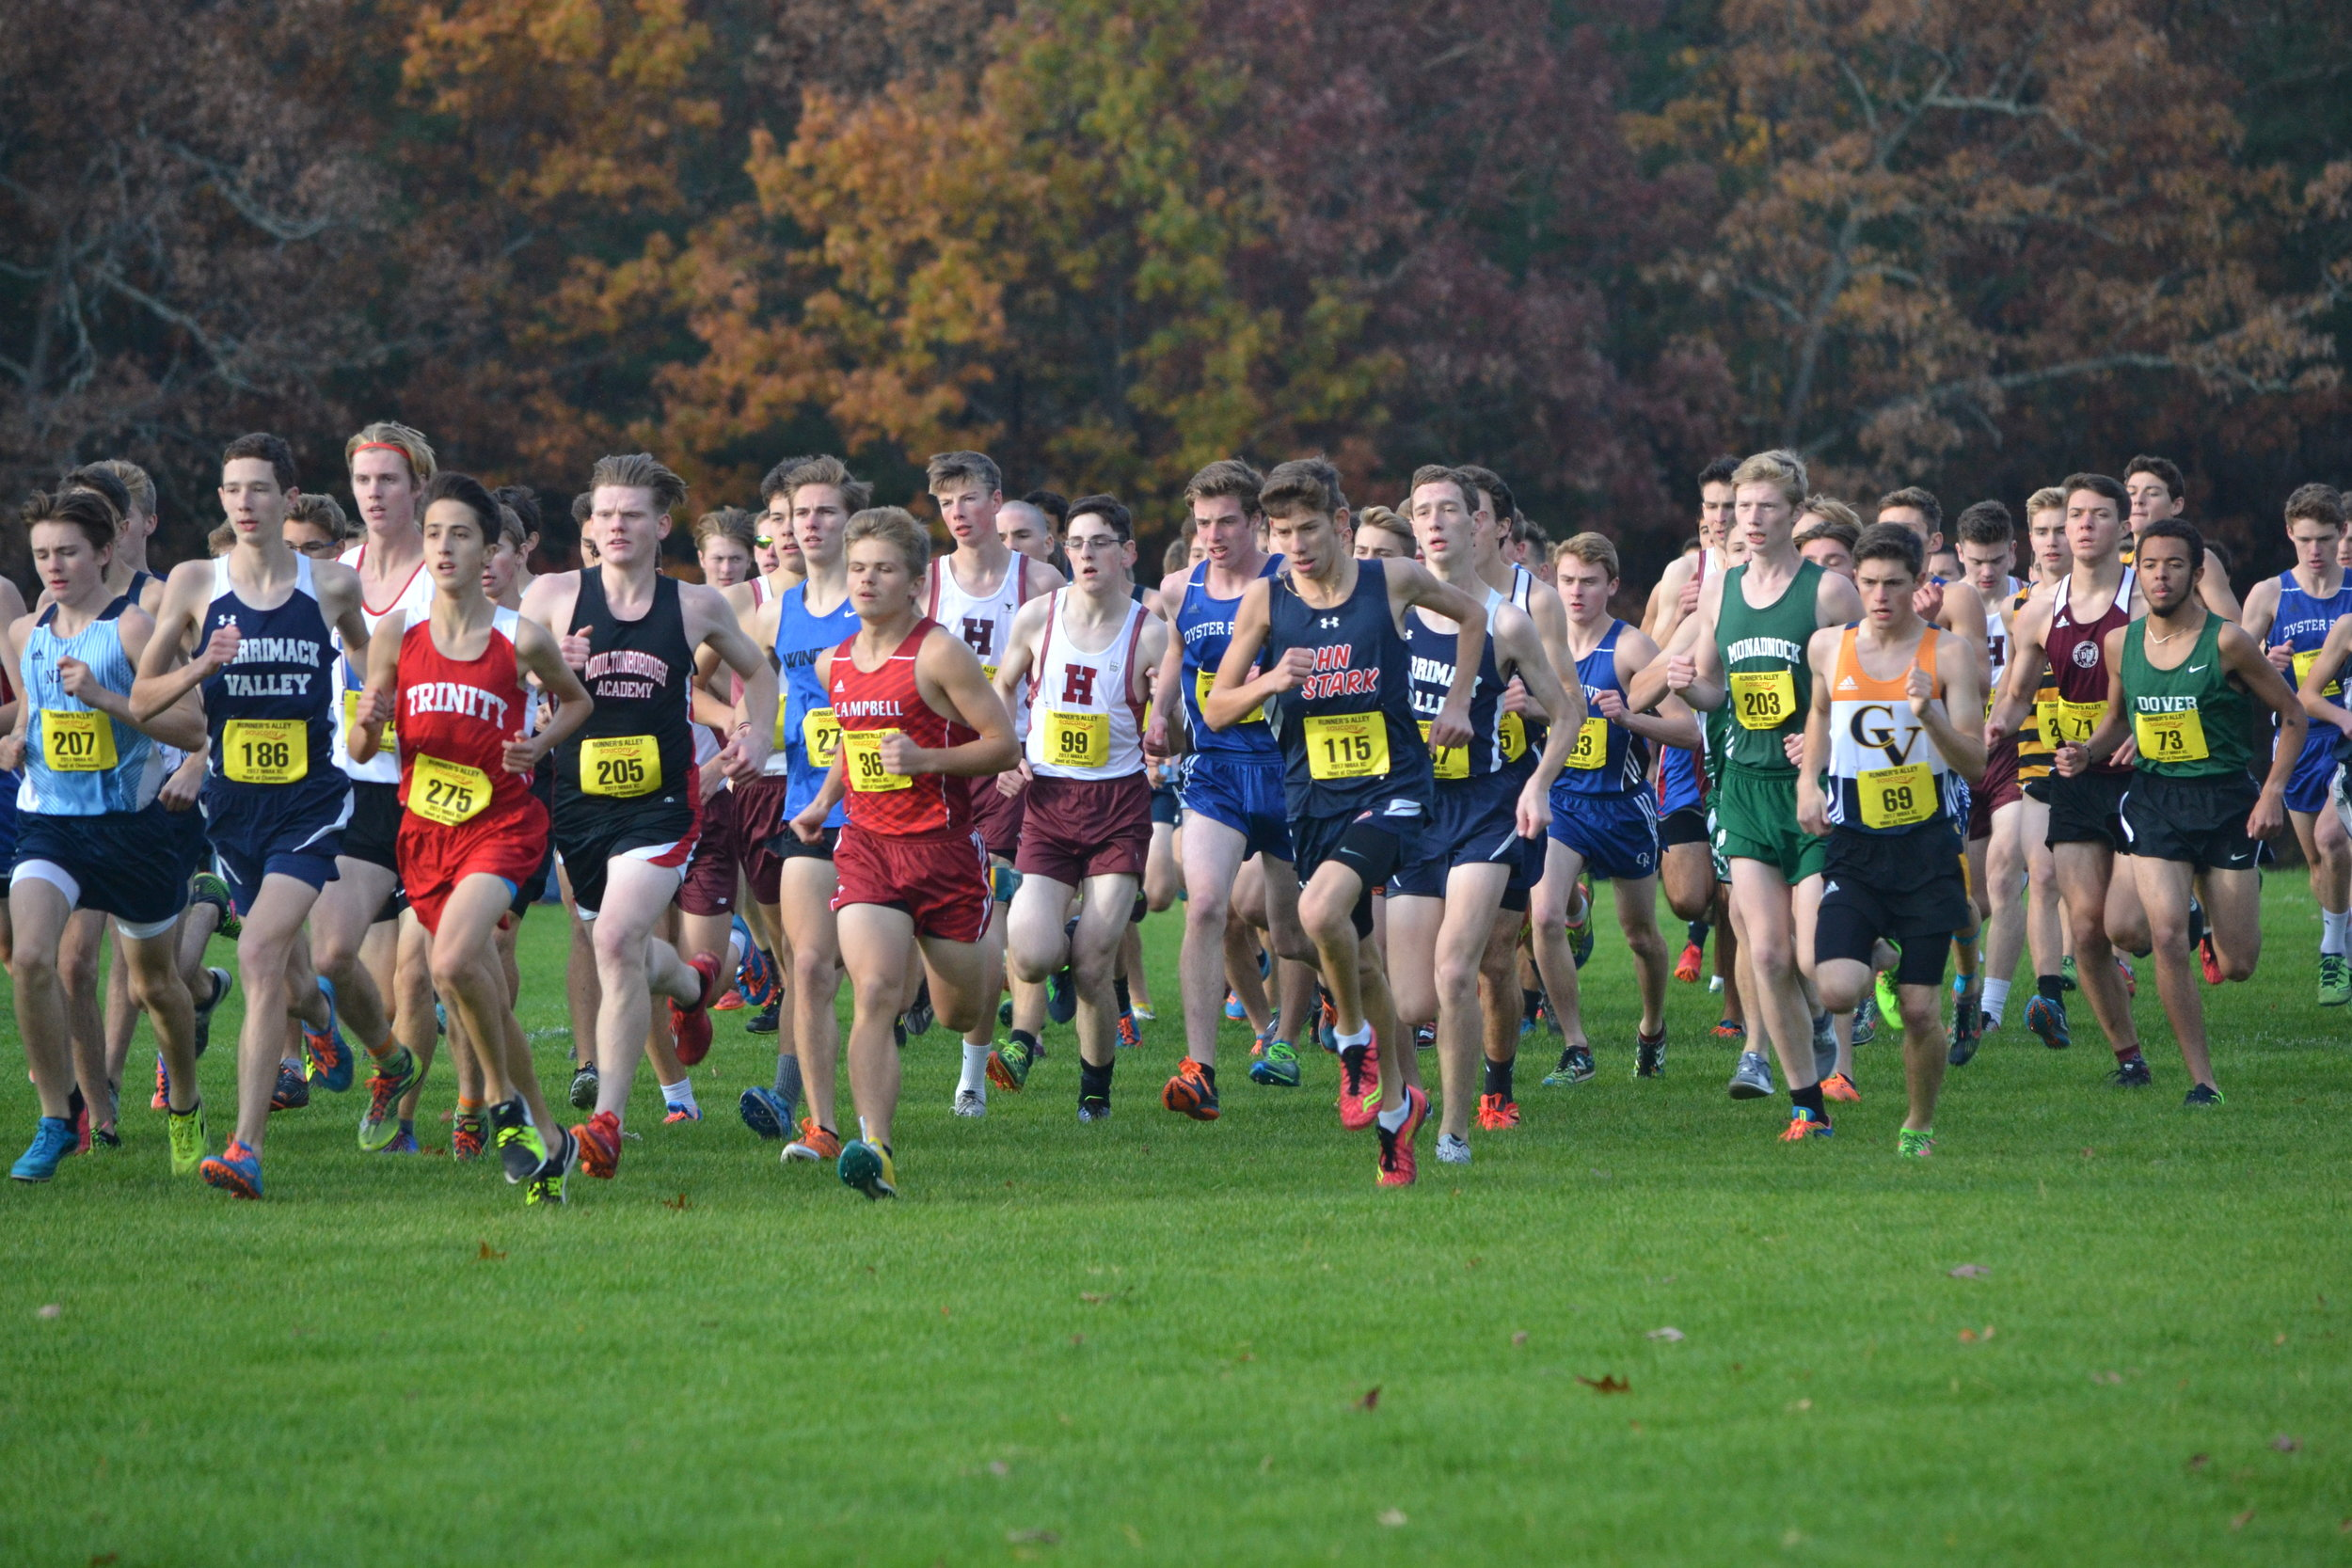 Start of the Meet of Champions